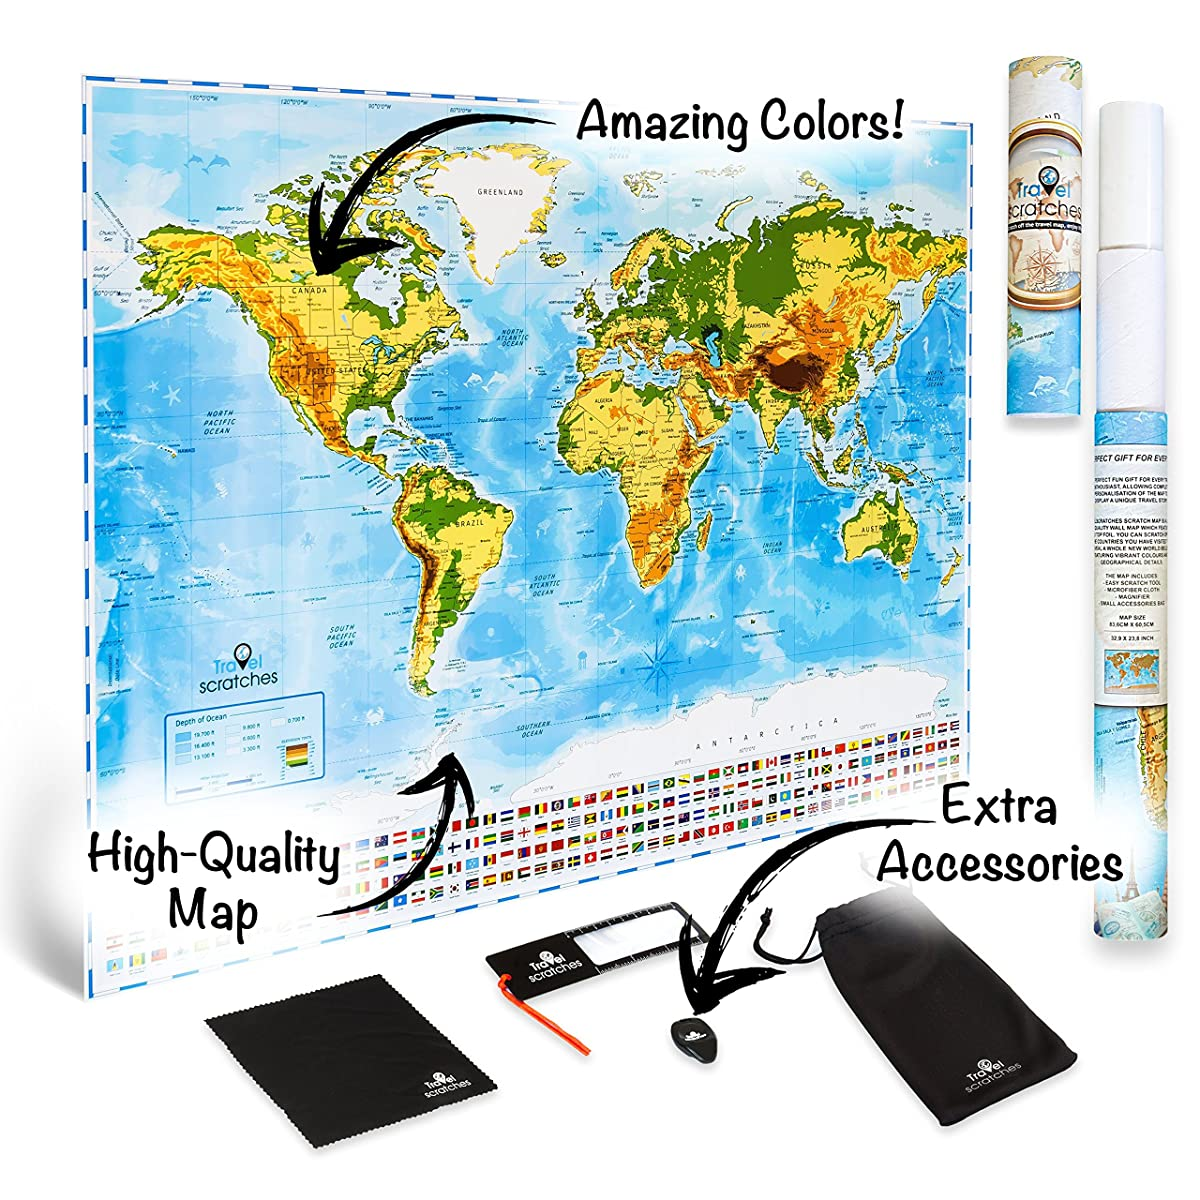 Scratch Off World Map Travel Poster - US States & Country Flags. Deluxe Personalized Tracker Memory Map. Scratcher Included. Perfect Traveler Gift, Blue & Gold Edition By Travelscratches